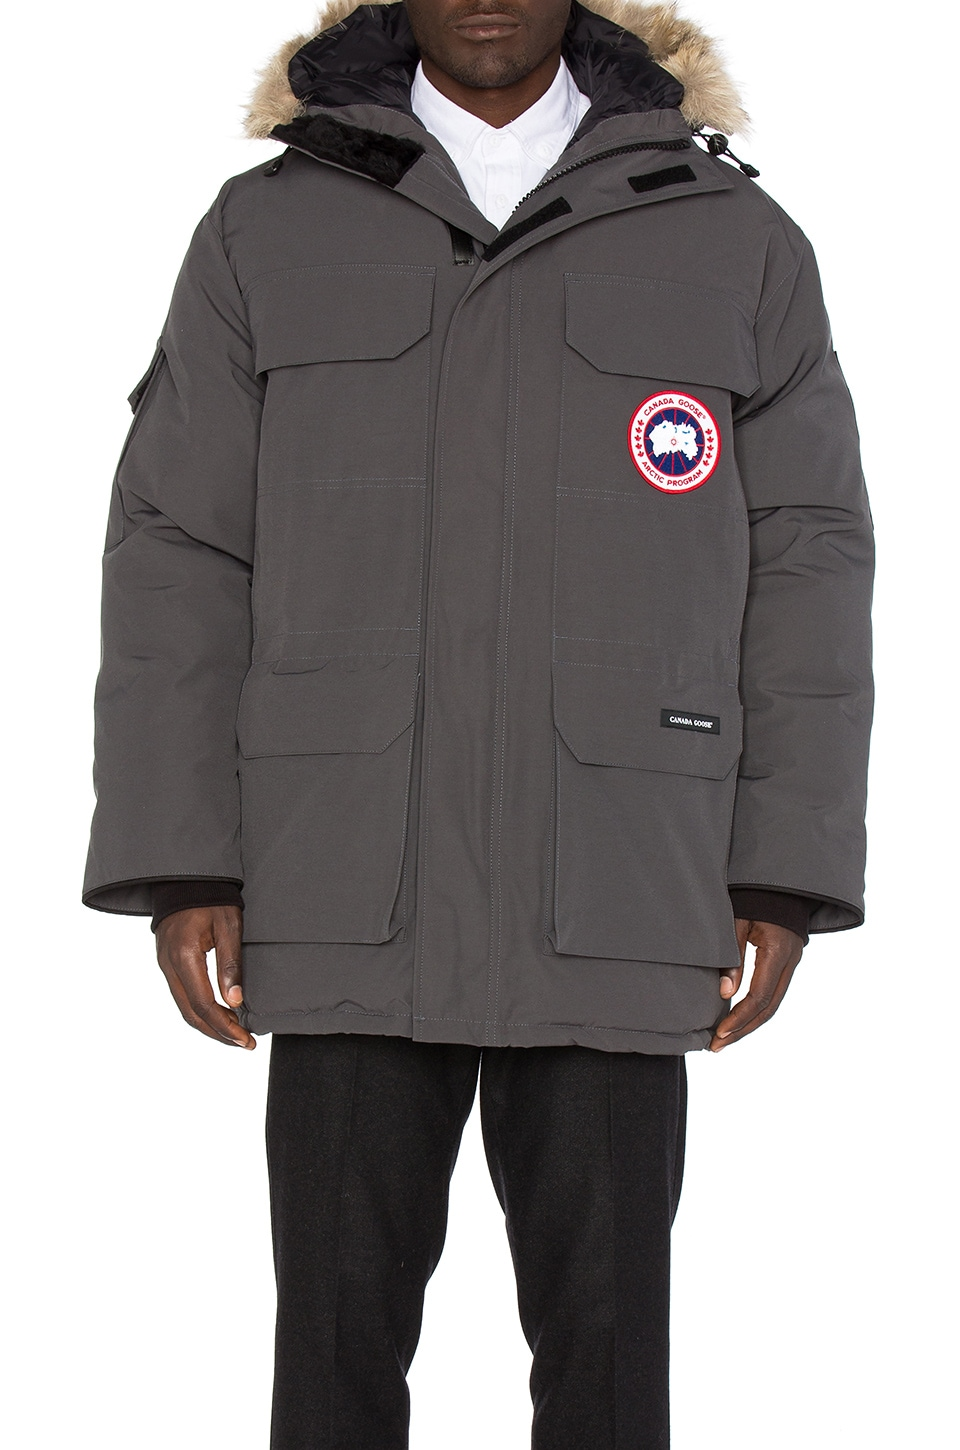 Expedition Coyote Fur Trim Parka by Canada Goose